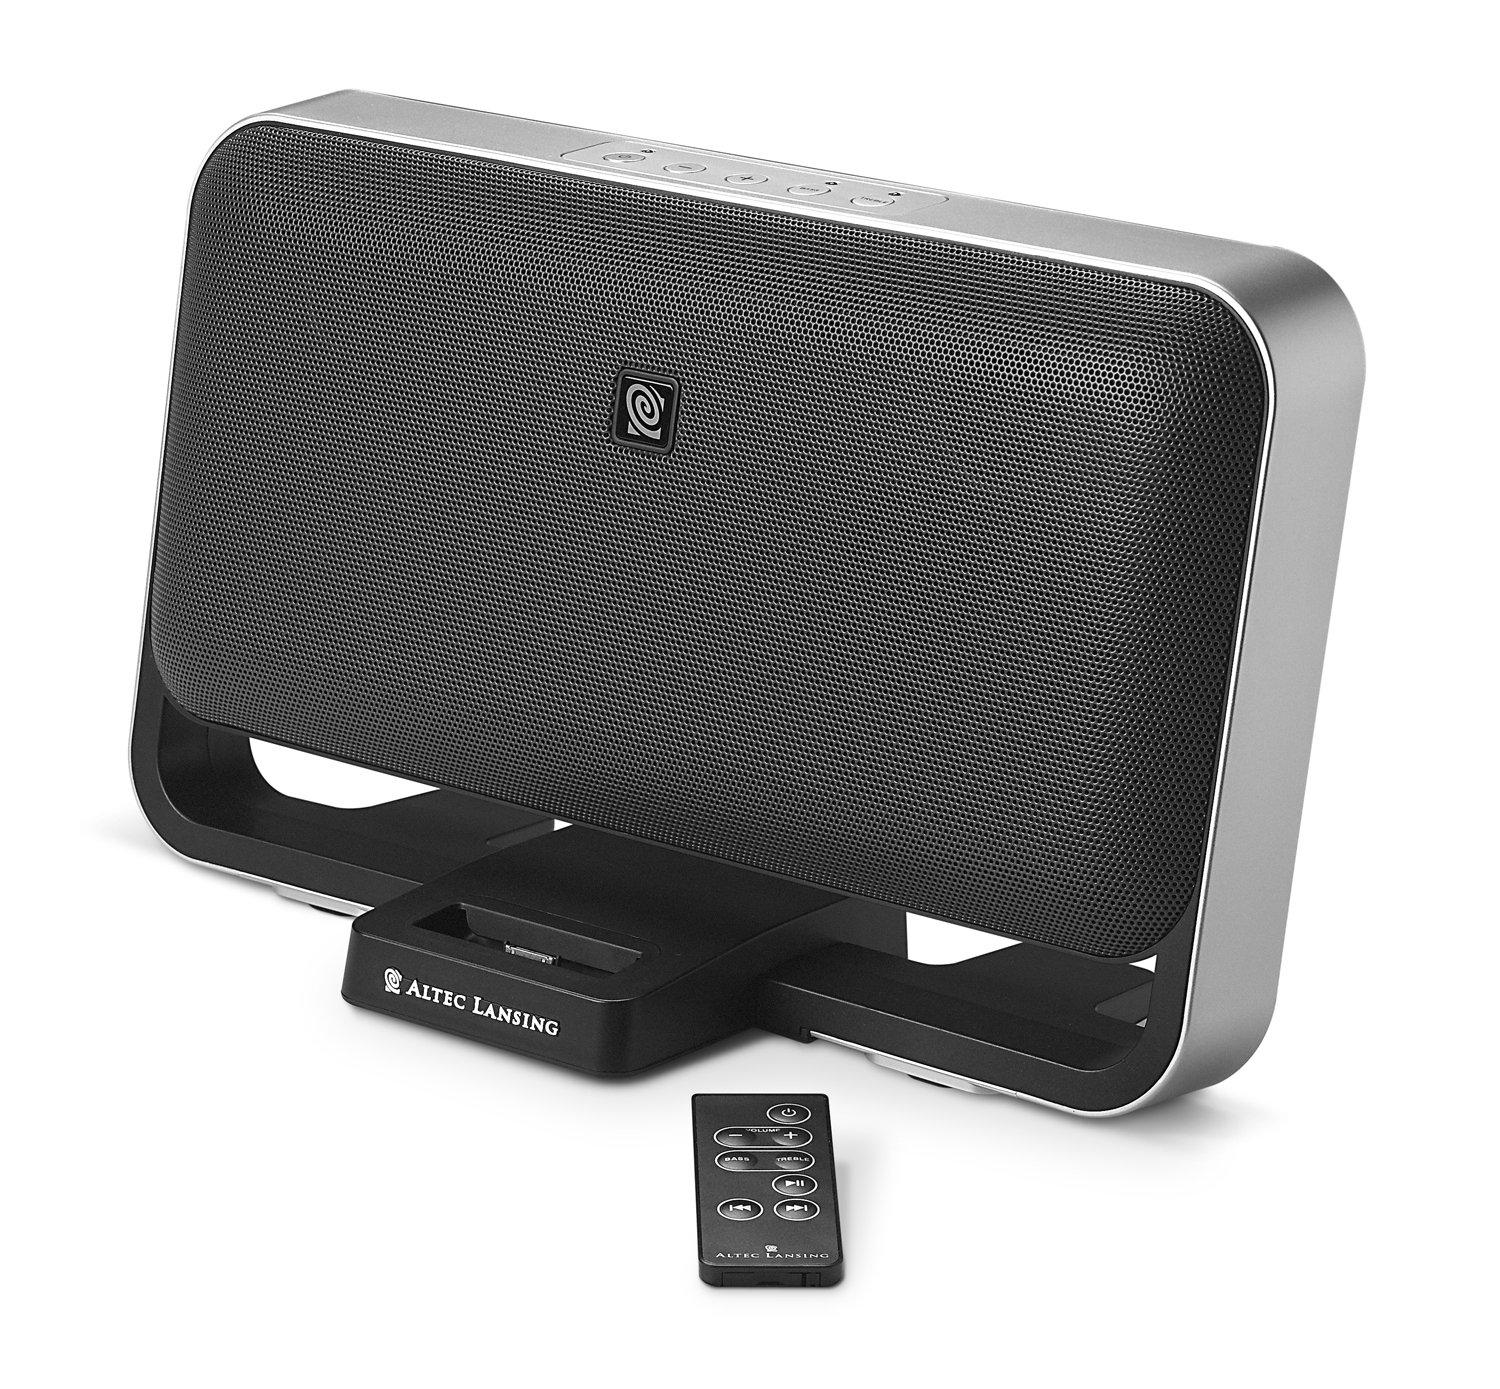 Altec Lansing M604 Powered Audio System for Zune by Altec Lansing (Image #1)